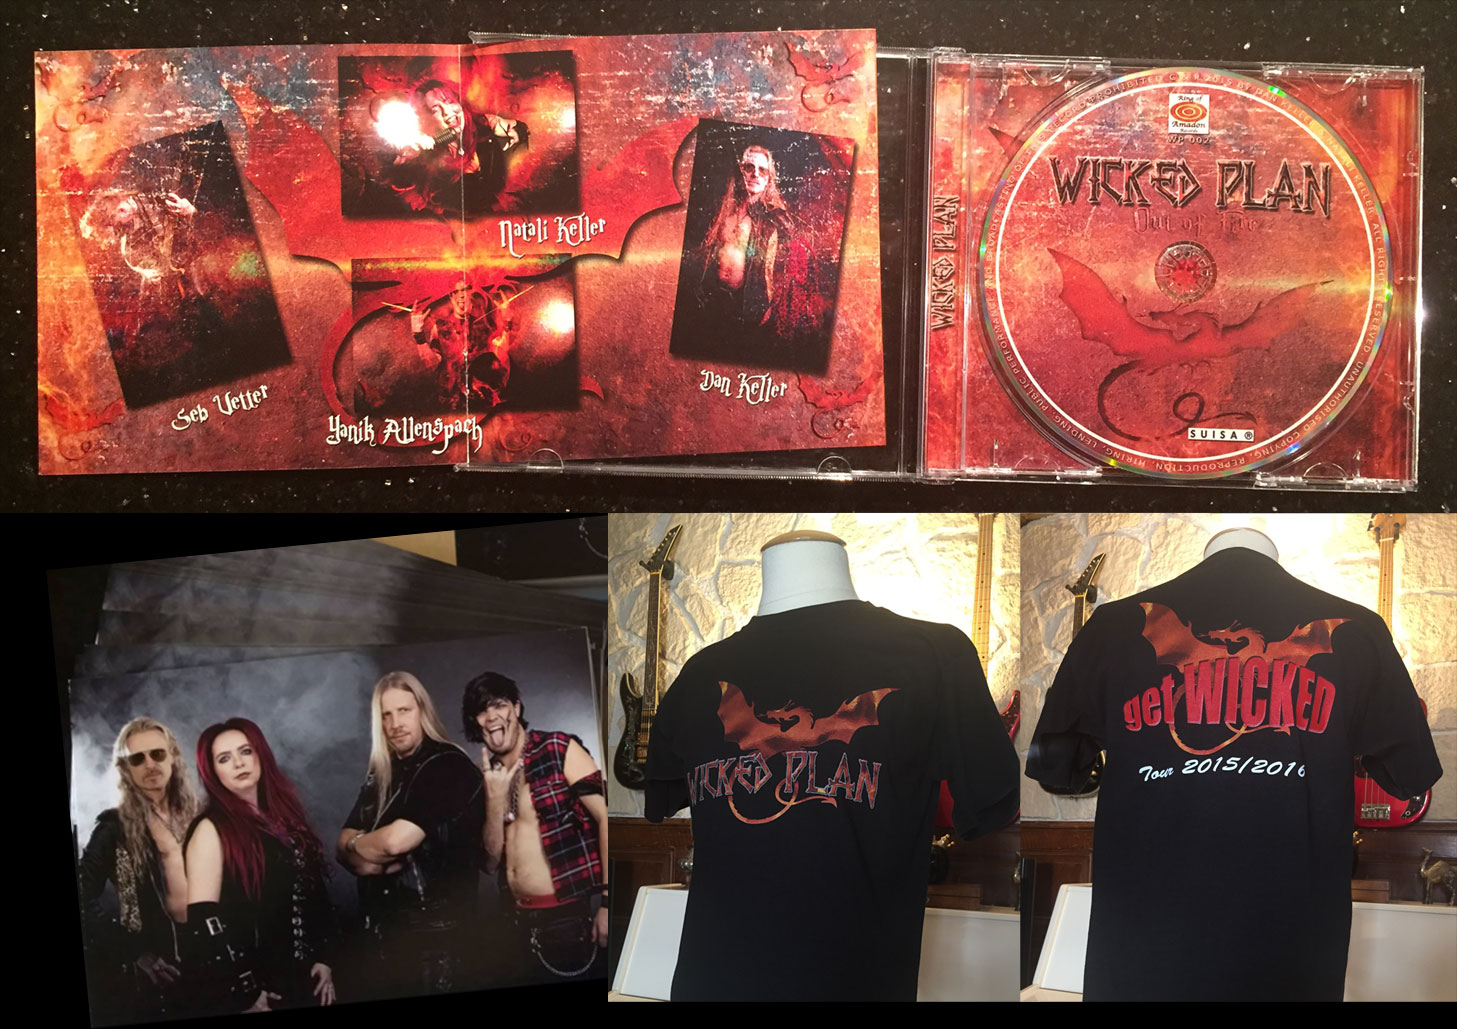 'Out Of Fire' CD + get WICKED T-Shirt